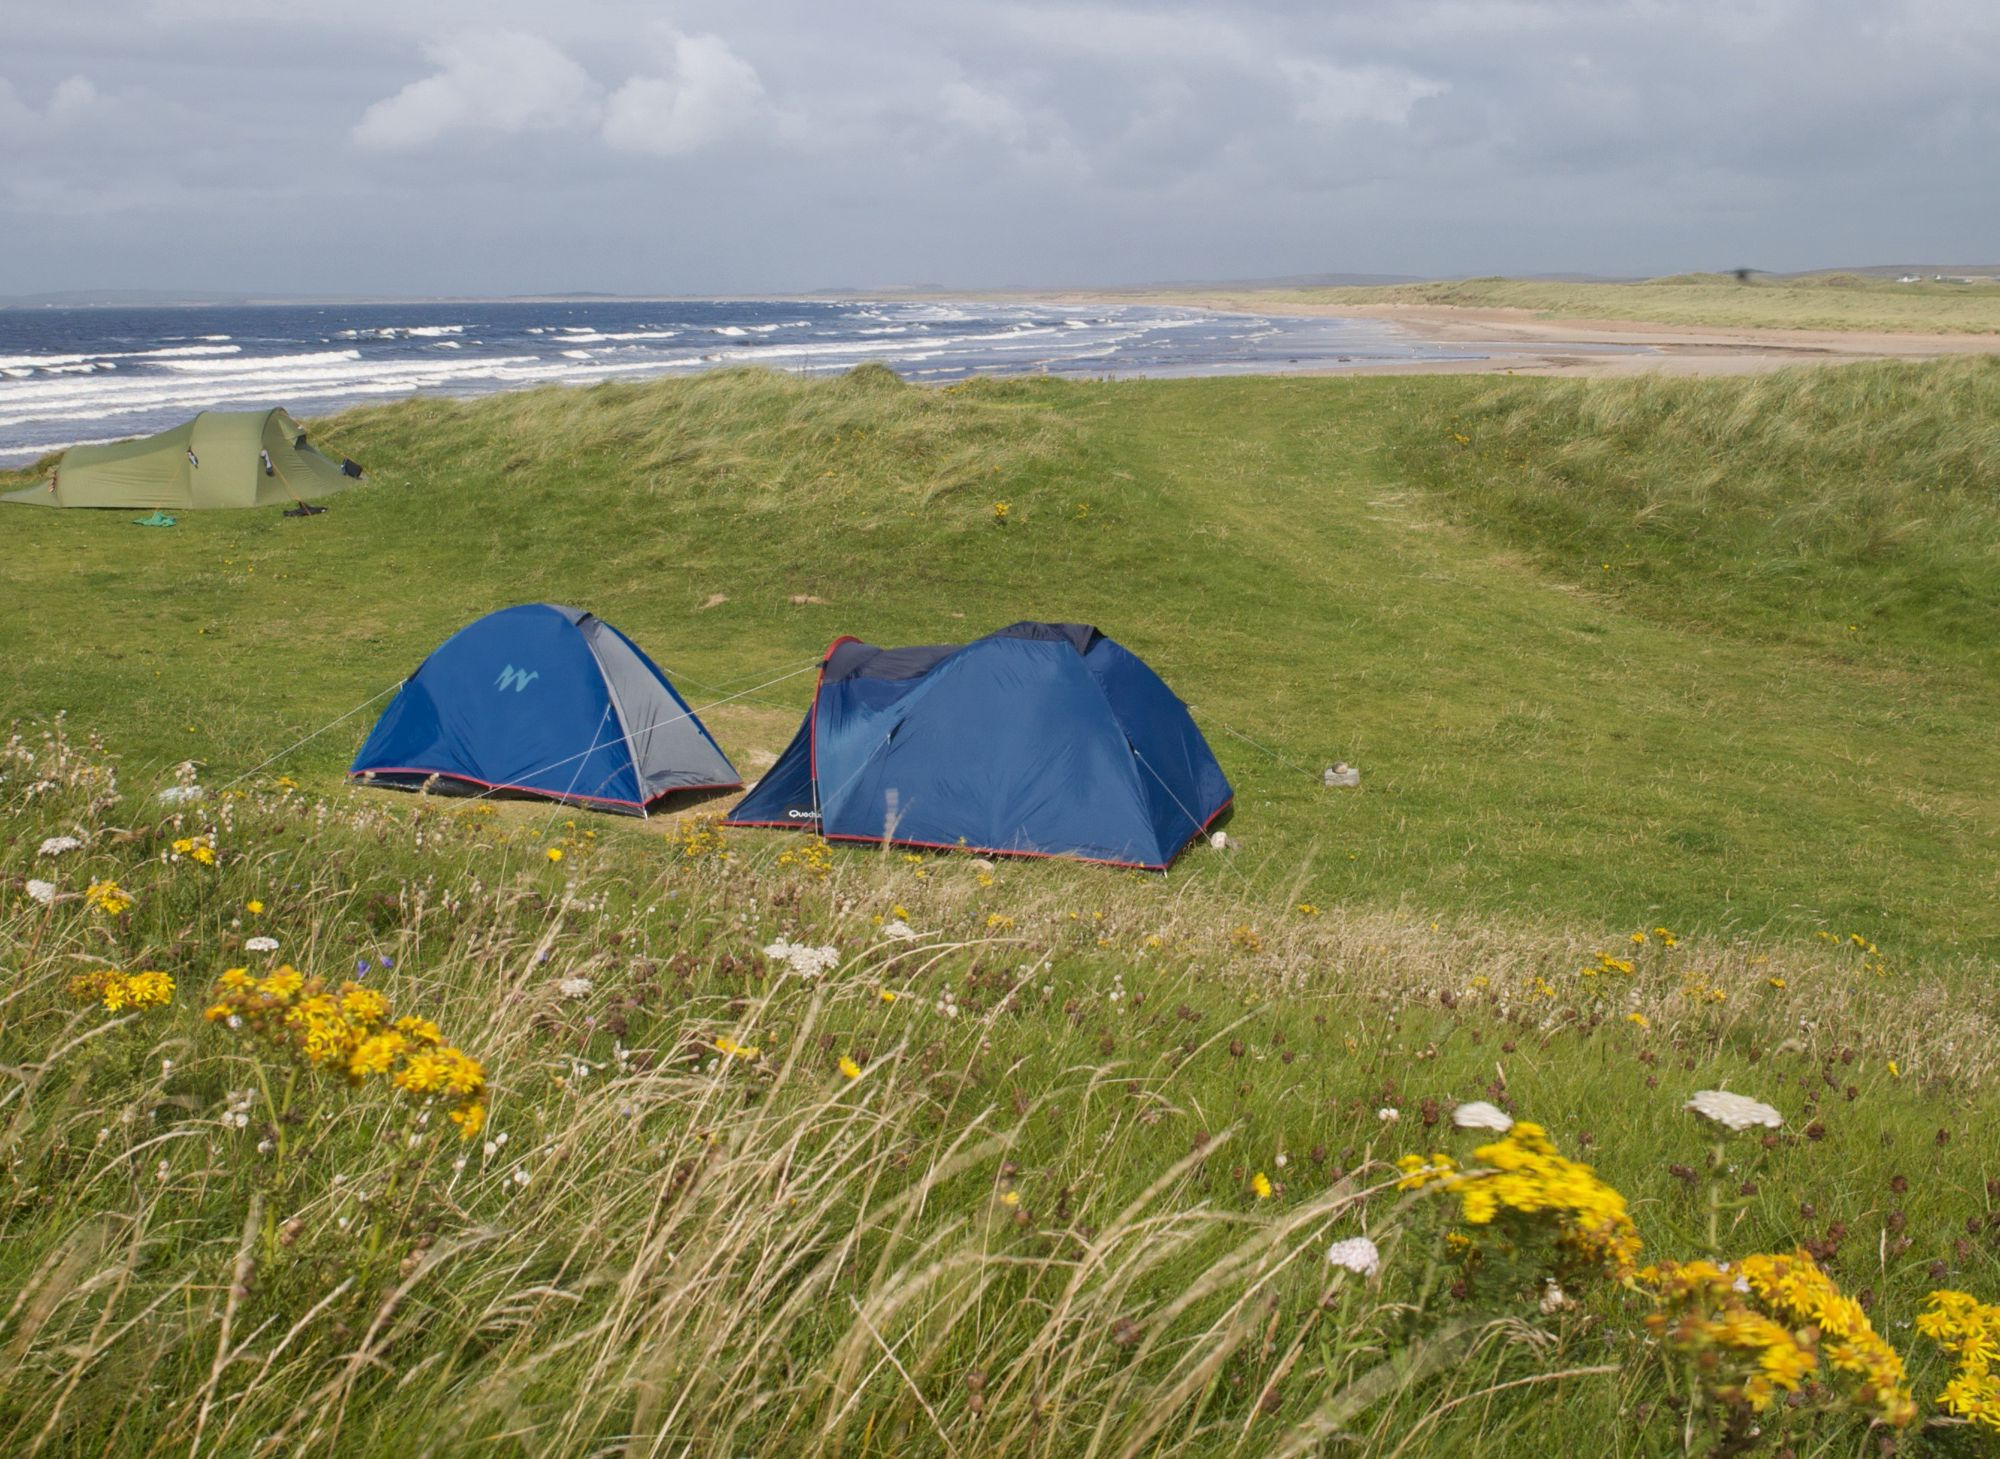 The combination of camping and beaches – camping by beaches, camping above beaches, camping with even the slightest hint of a beach in the vicinity, is the best.